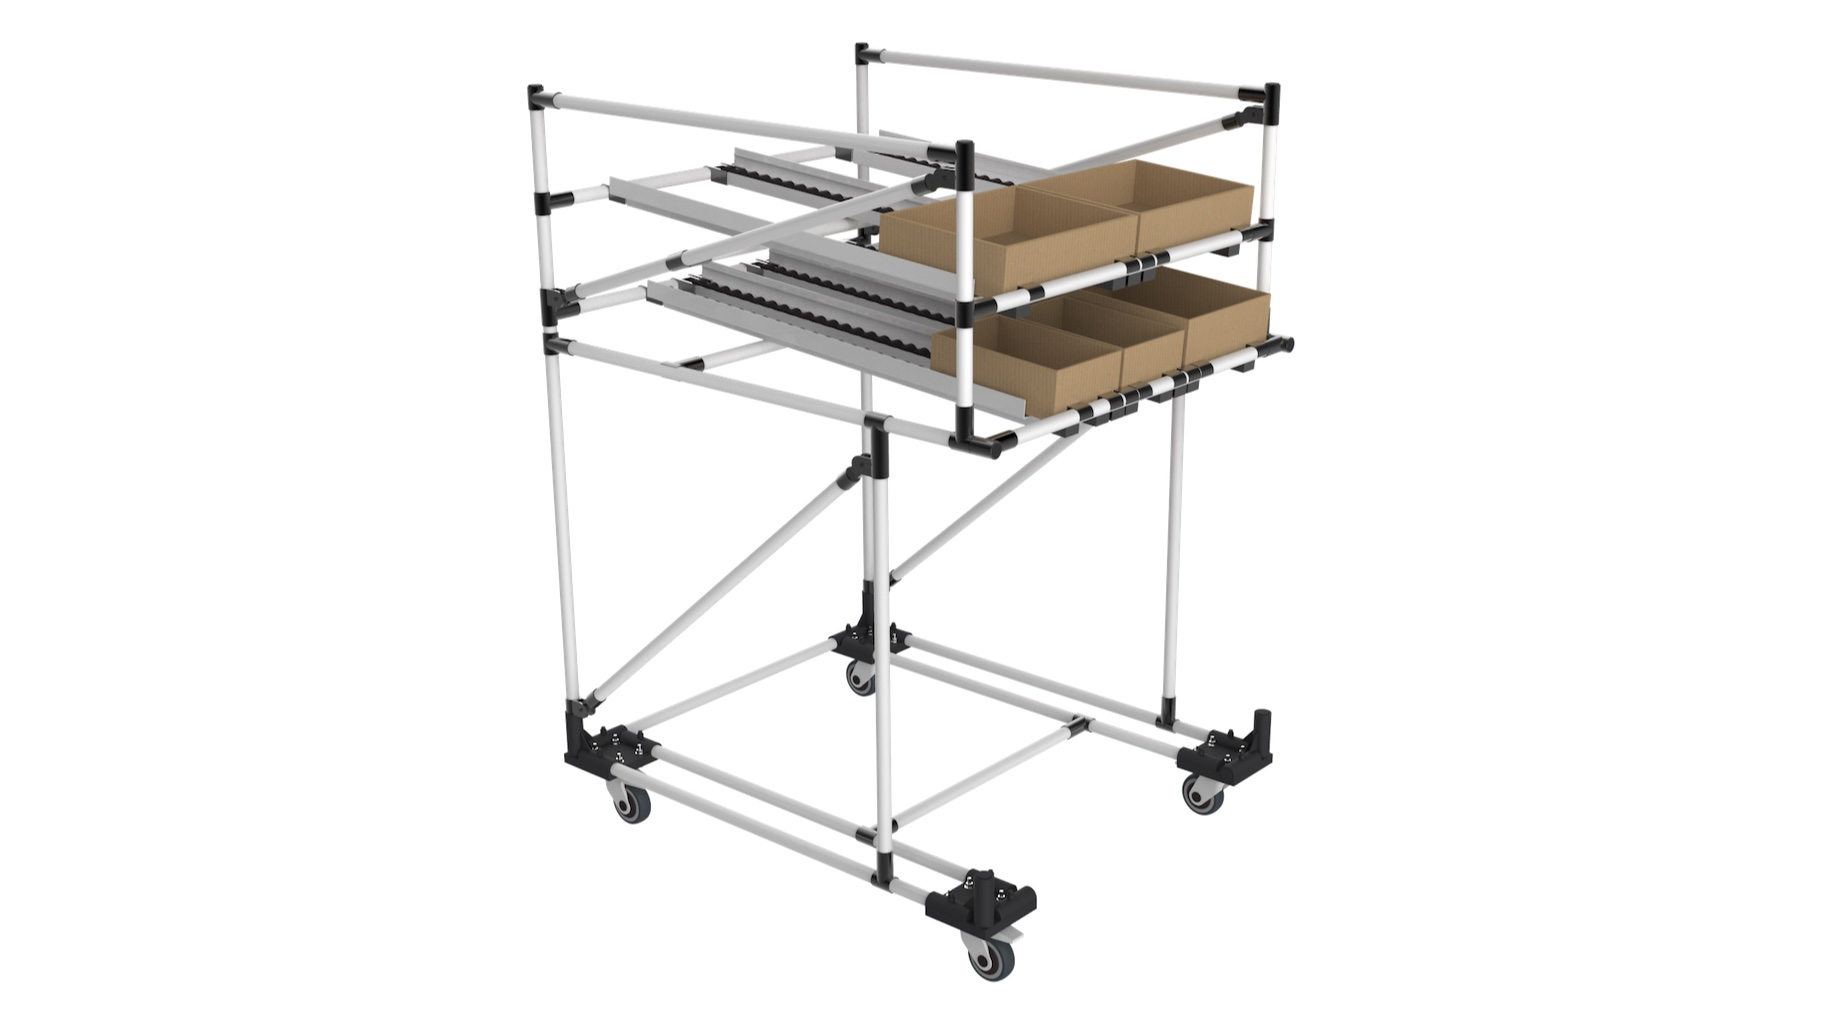 Metallurgical industry - Line edge flow rack, consisting of two supply levels and an empty space below to allow the storage of pallets, oversized bins or even to attach to a machine or assembly station.